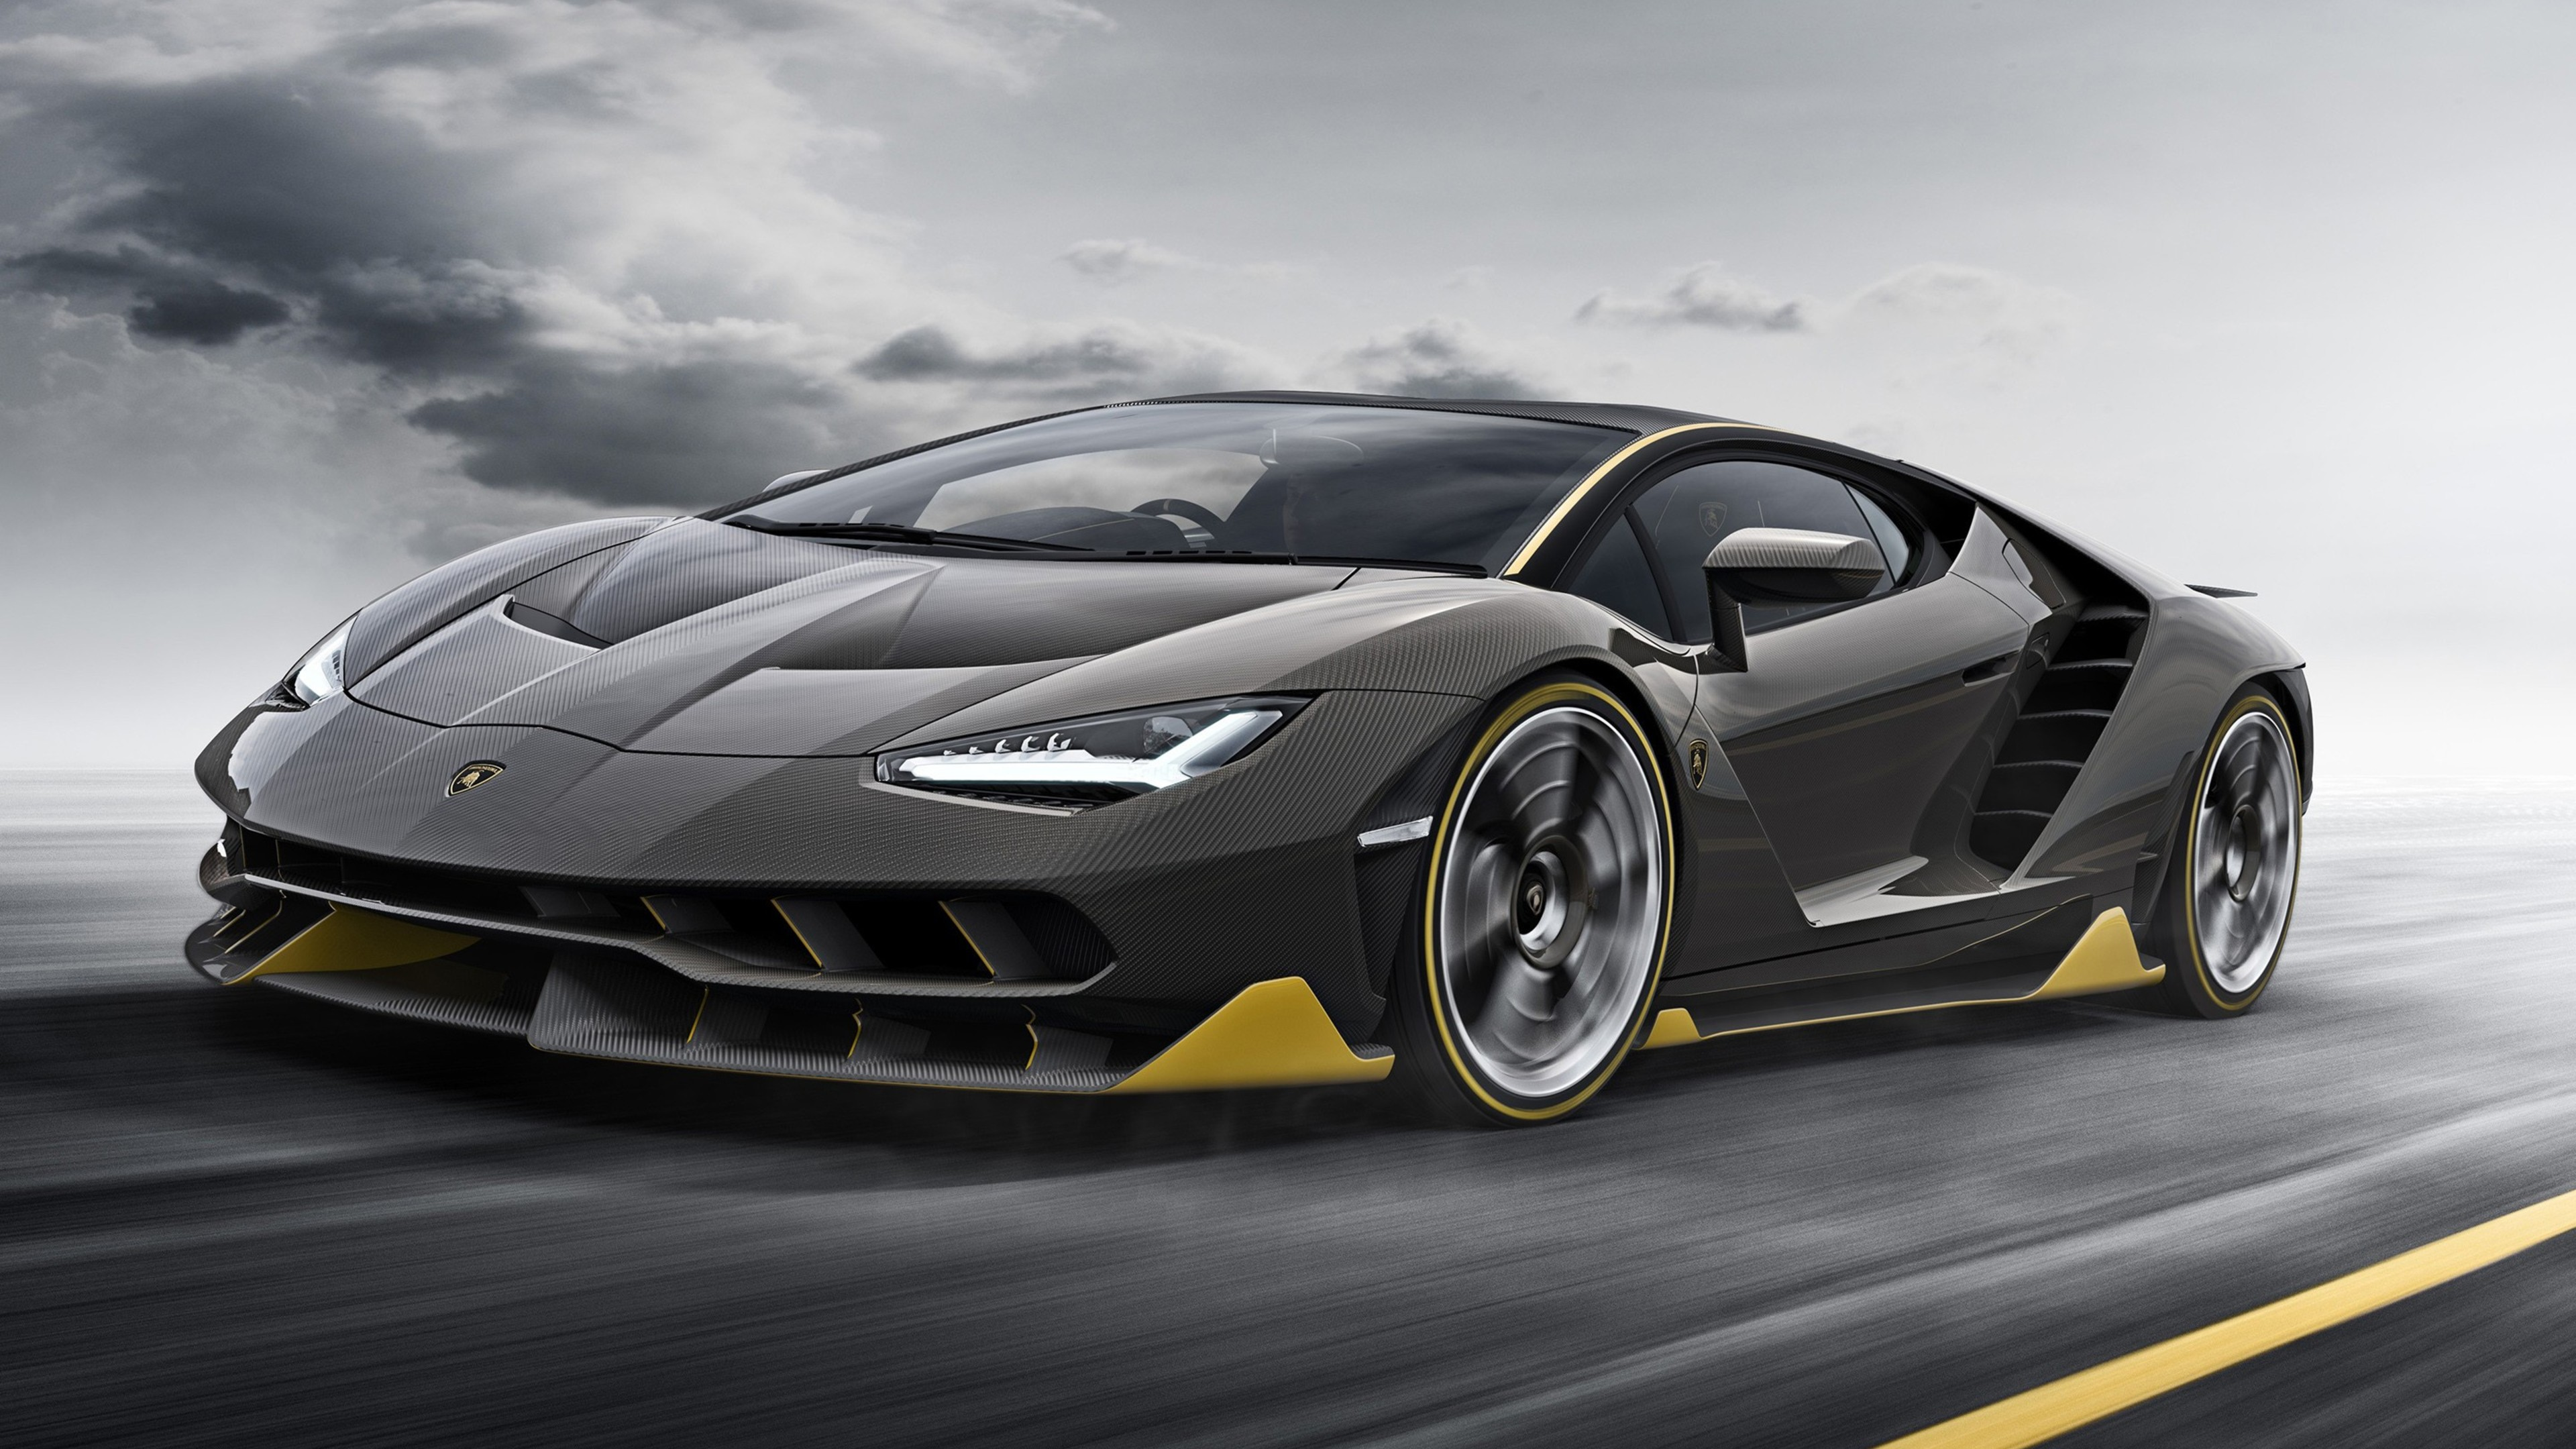 car convertible enjoyable you for sale japan from article lamborghini facts knowledge industry